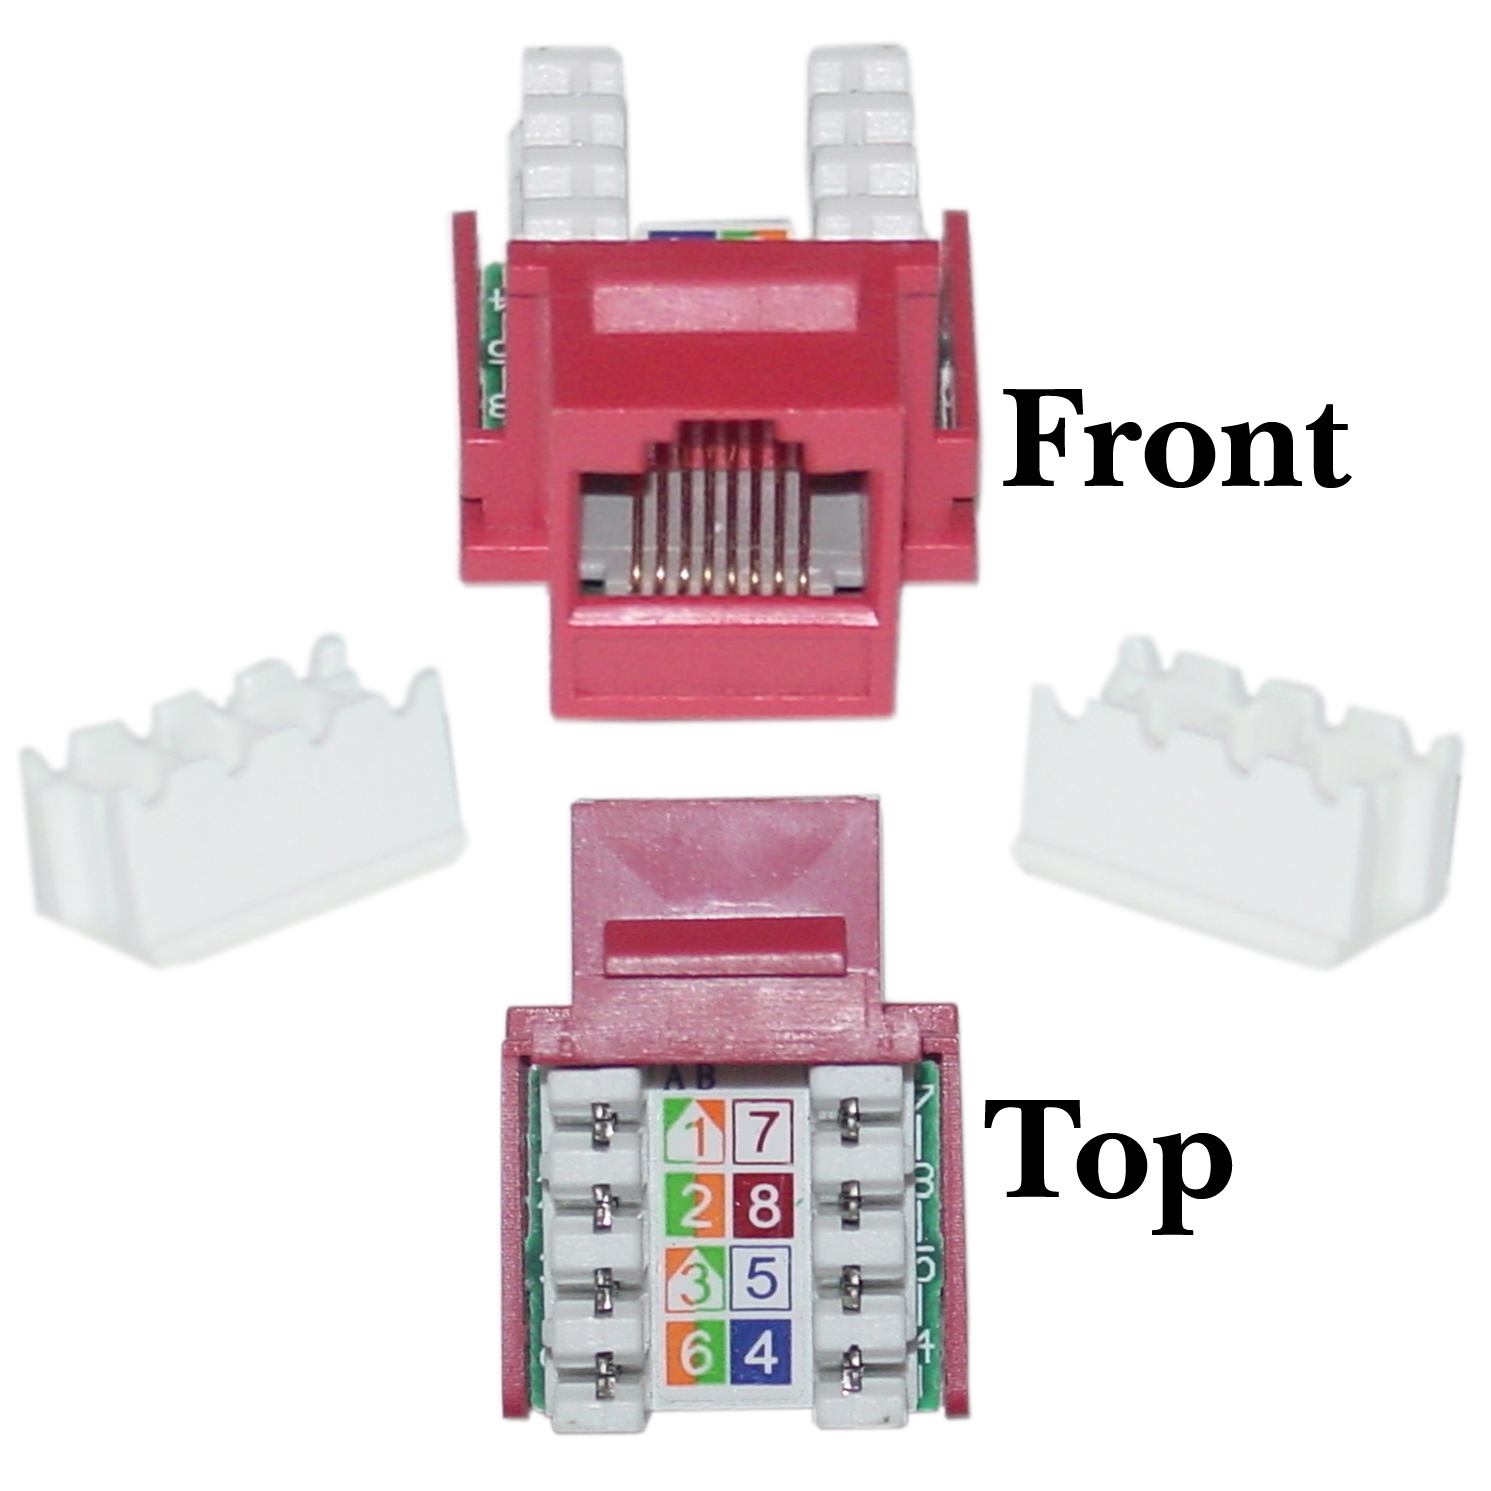 110 Punchdown Block To Rj45 Wiring Diagram